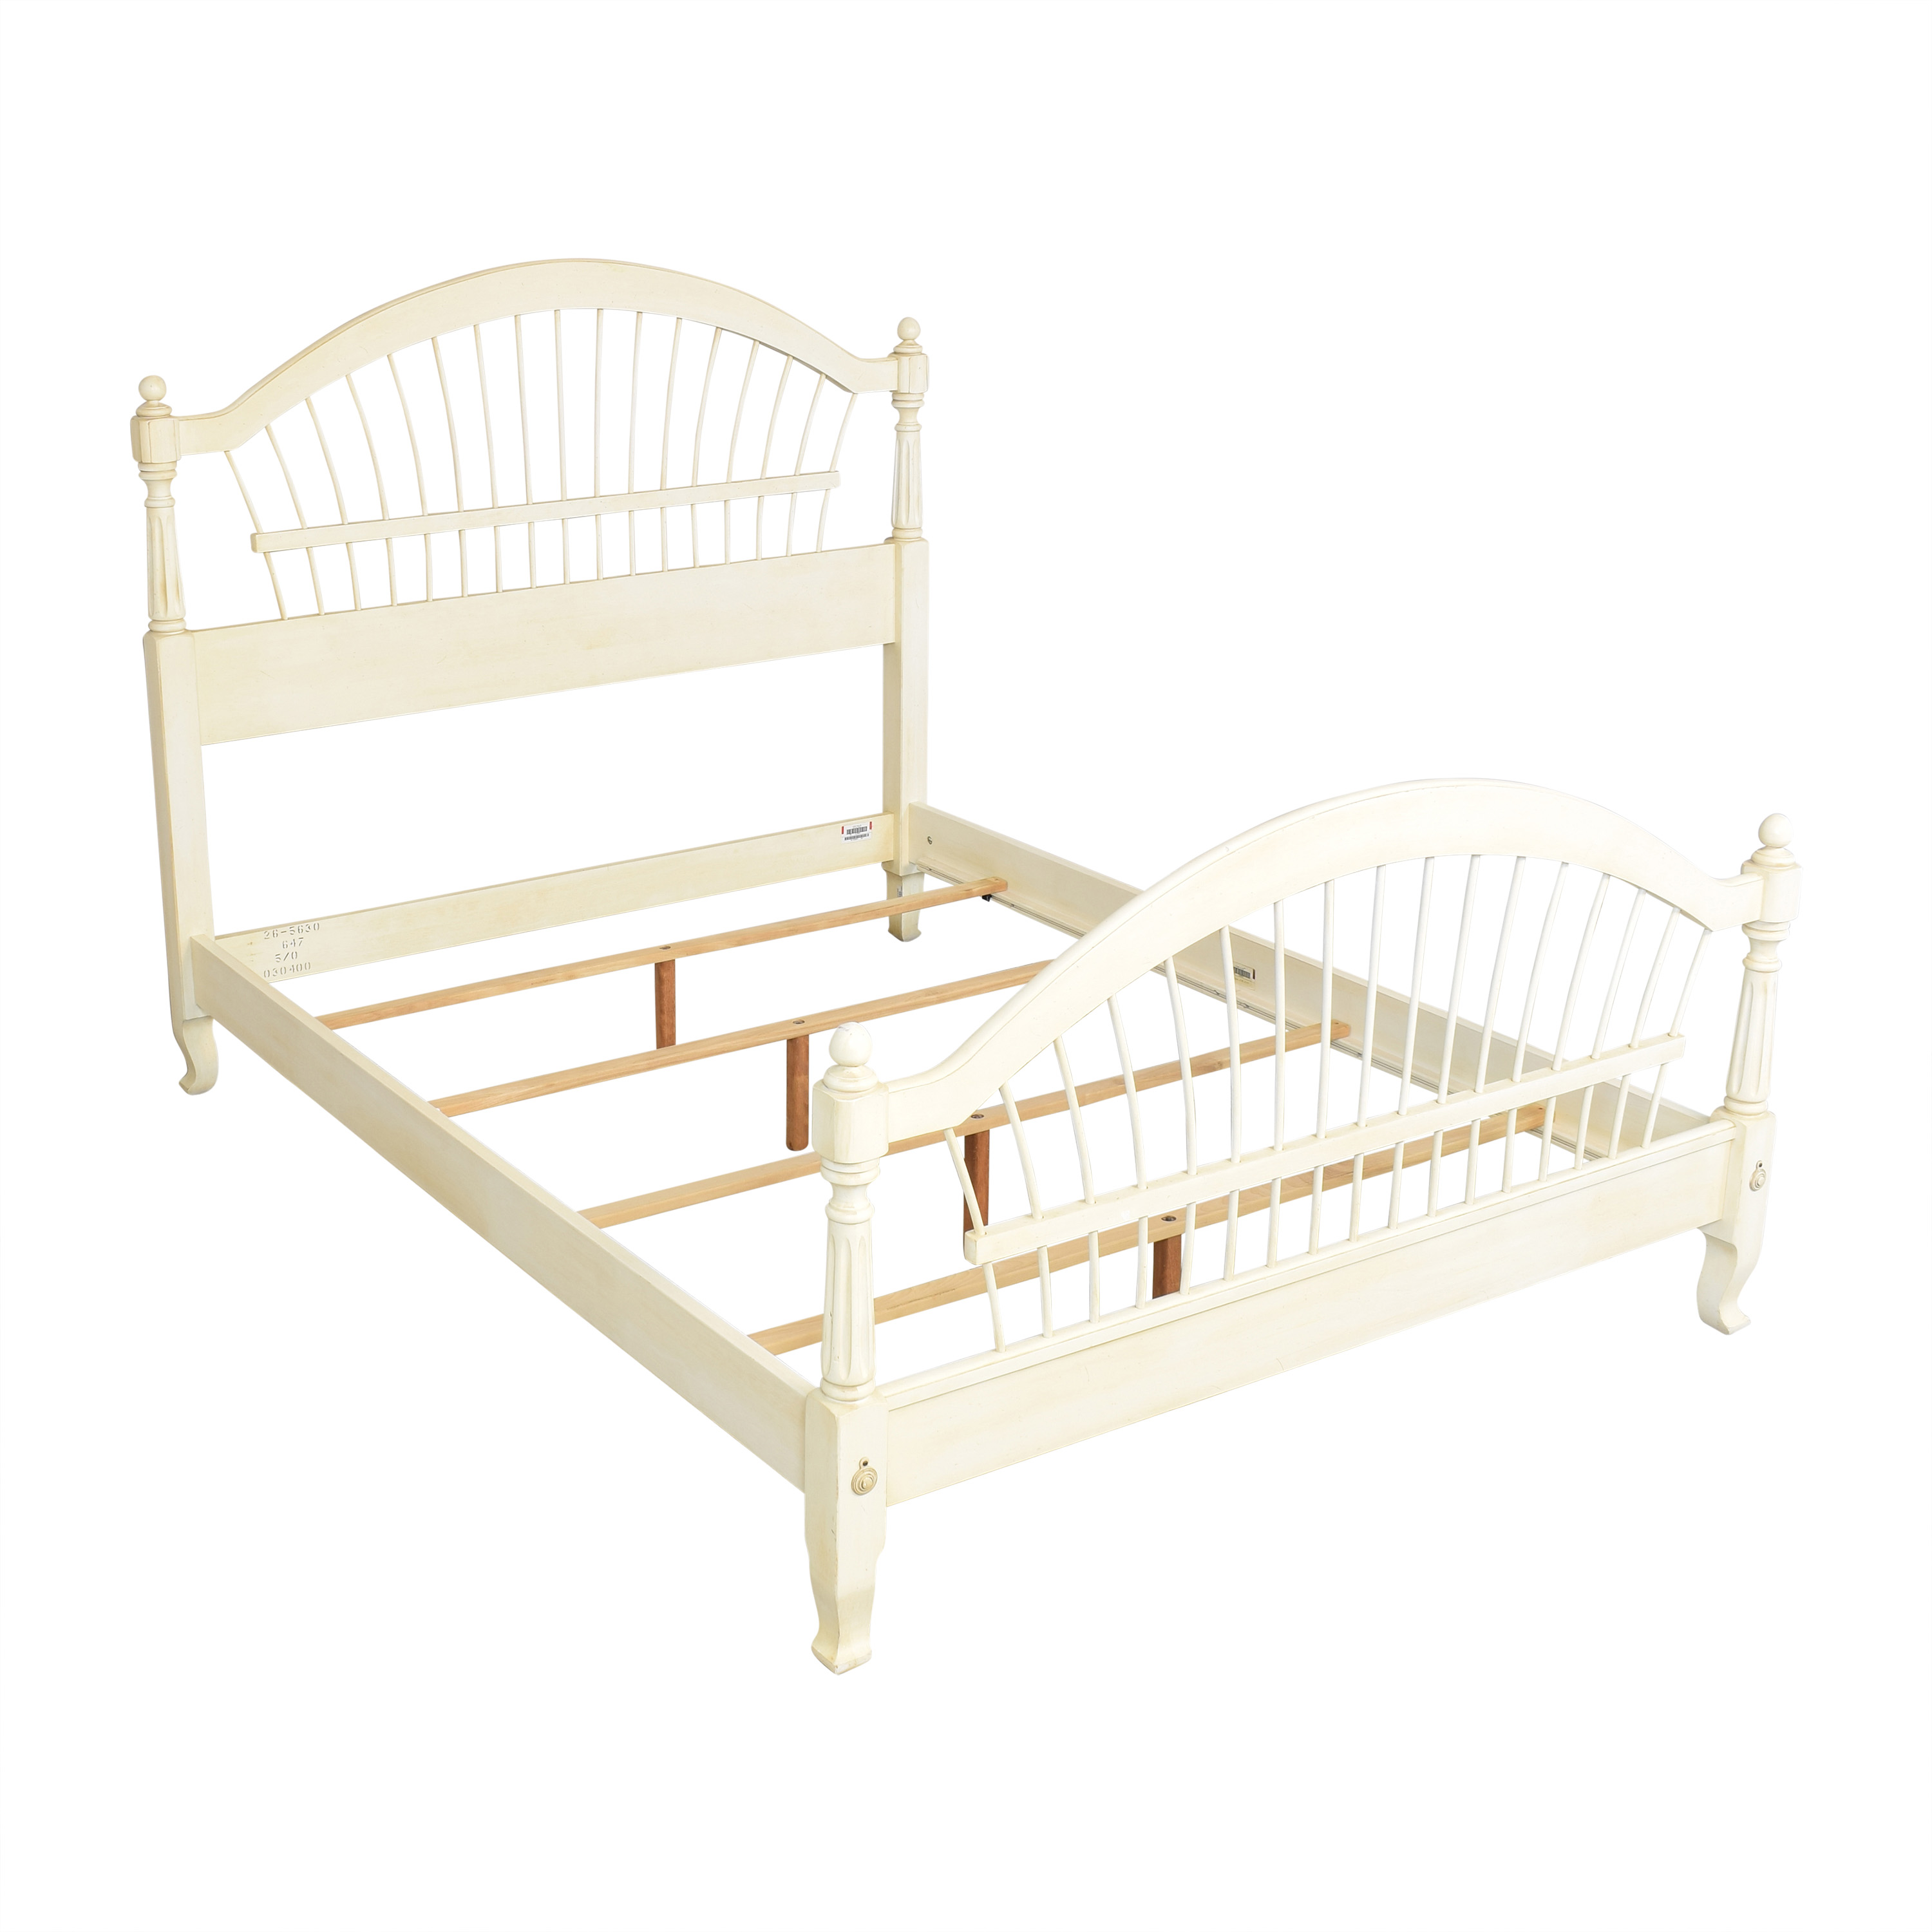 Ethan Allen Ethan Allen Country French Queen Bed pa